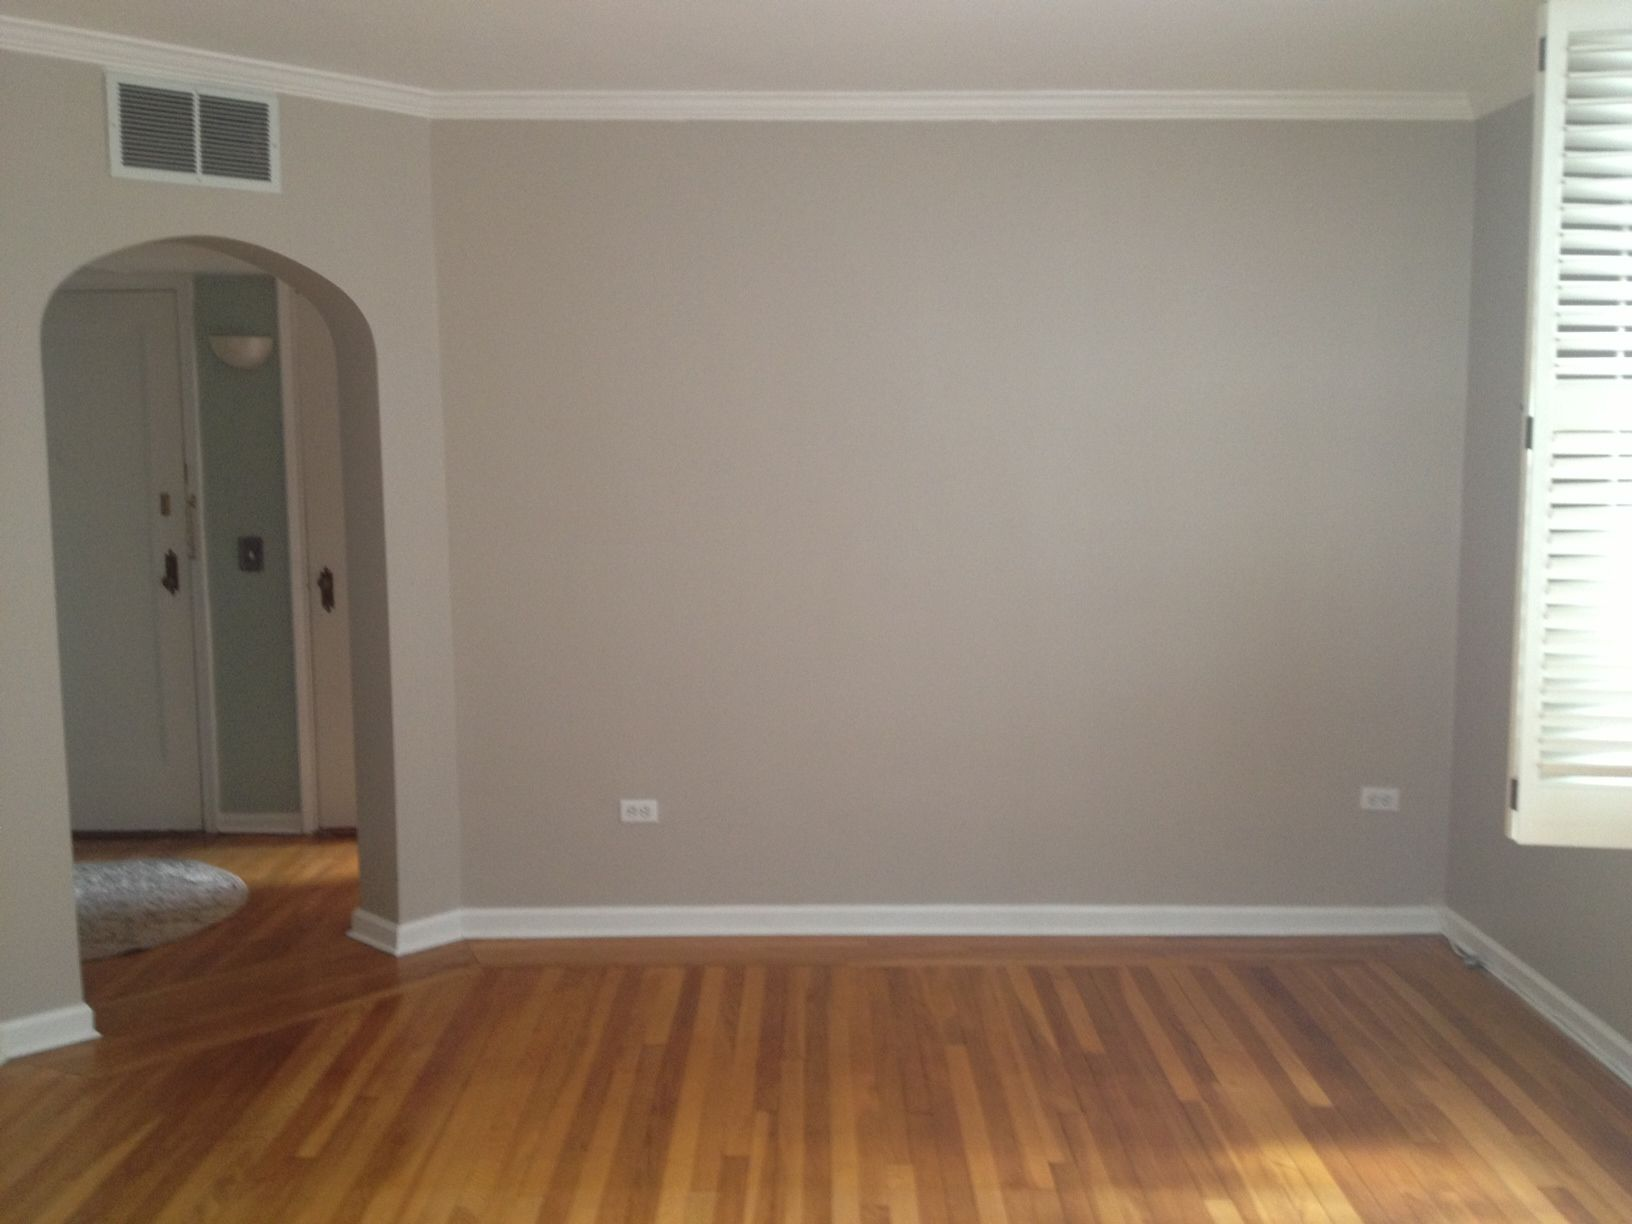 Farbe Küchenwand Benjamin Moore Smokey Taupe Design Wall Paint Zimmer